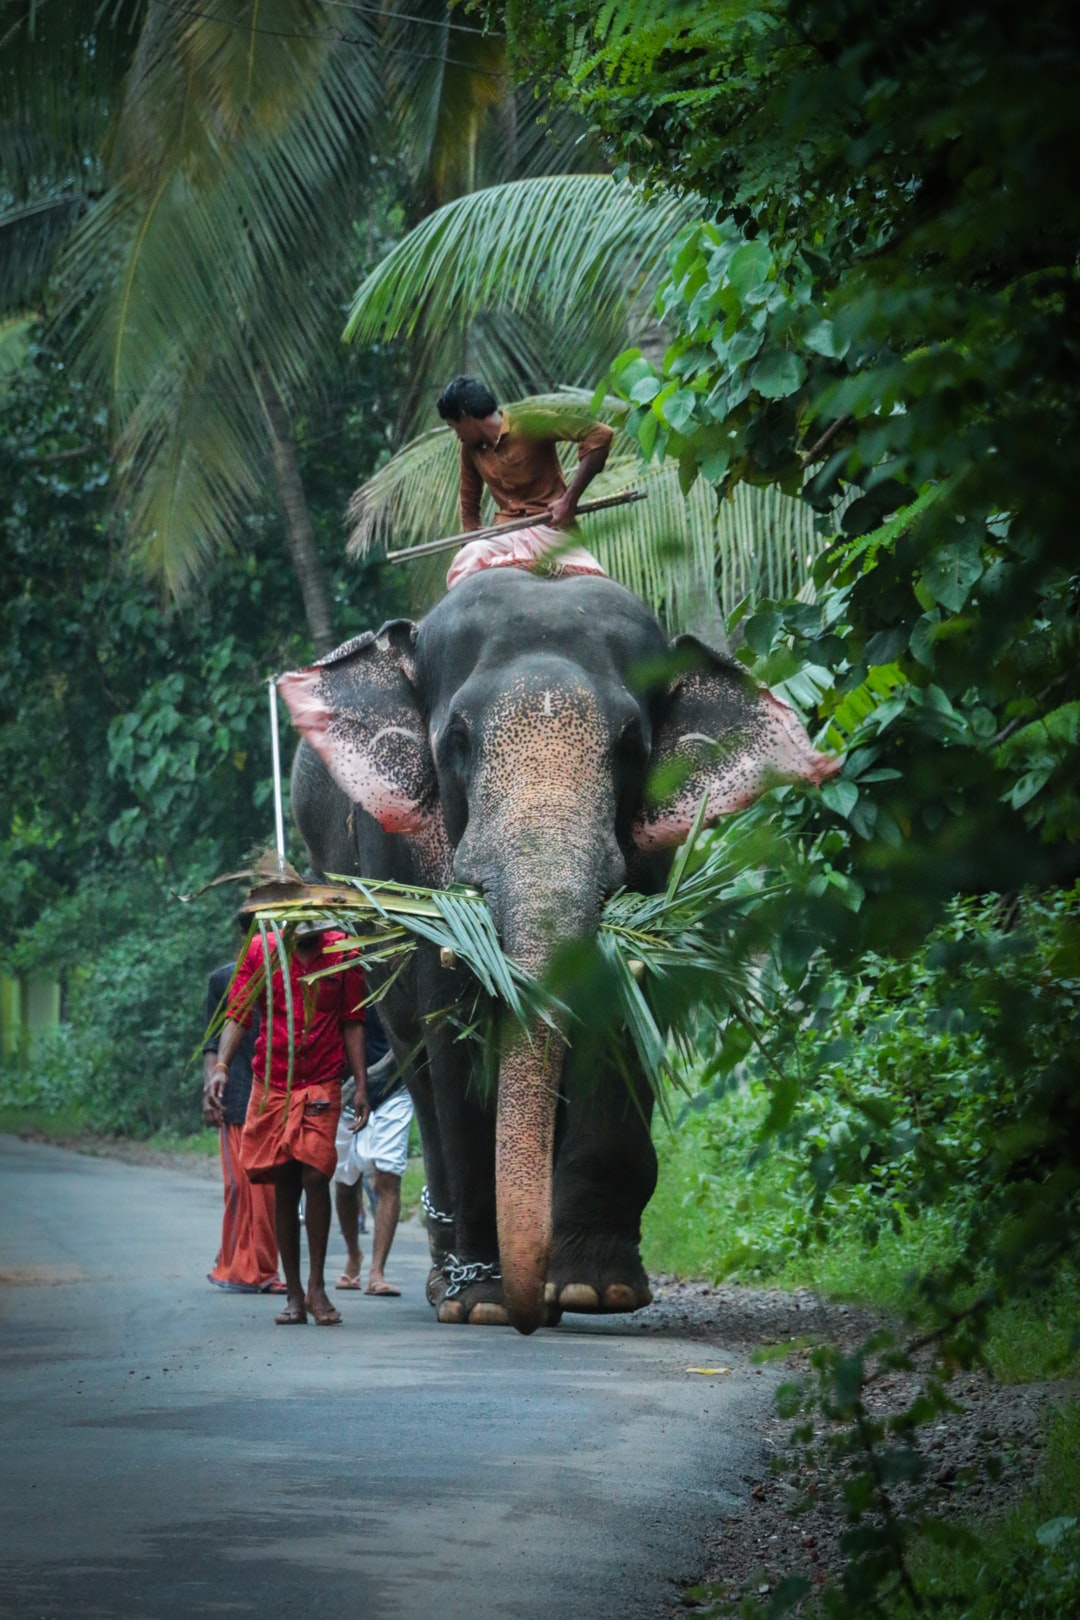 Kerala Pictures [Scenic Travel Photos]   Download Free ...